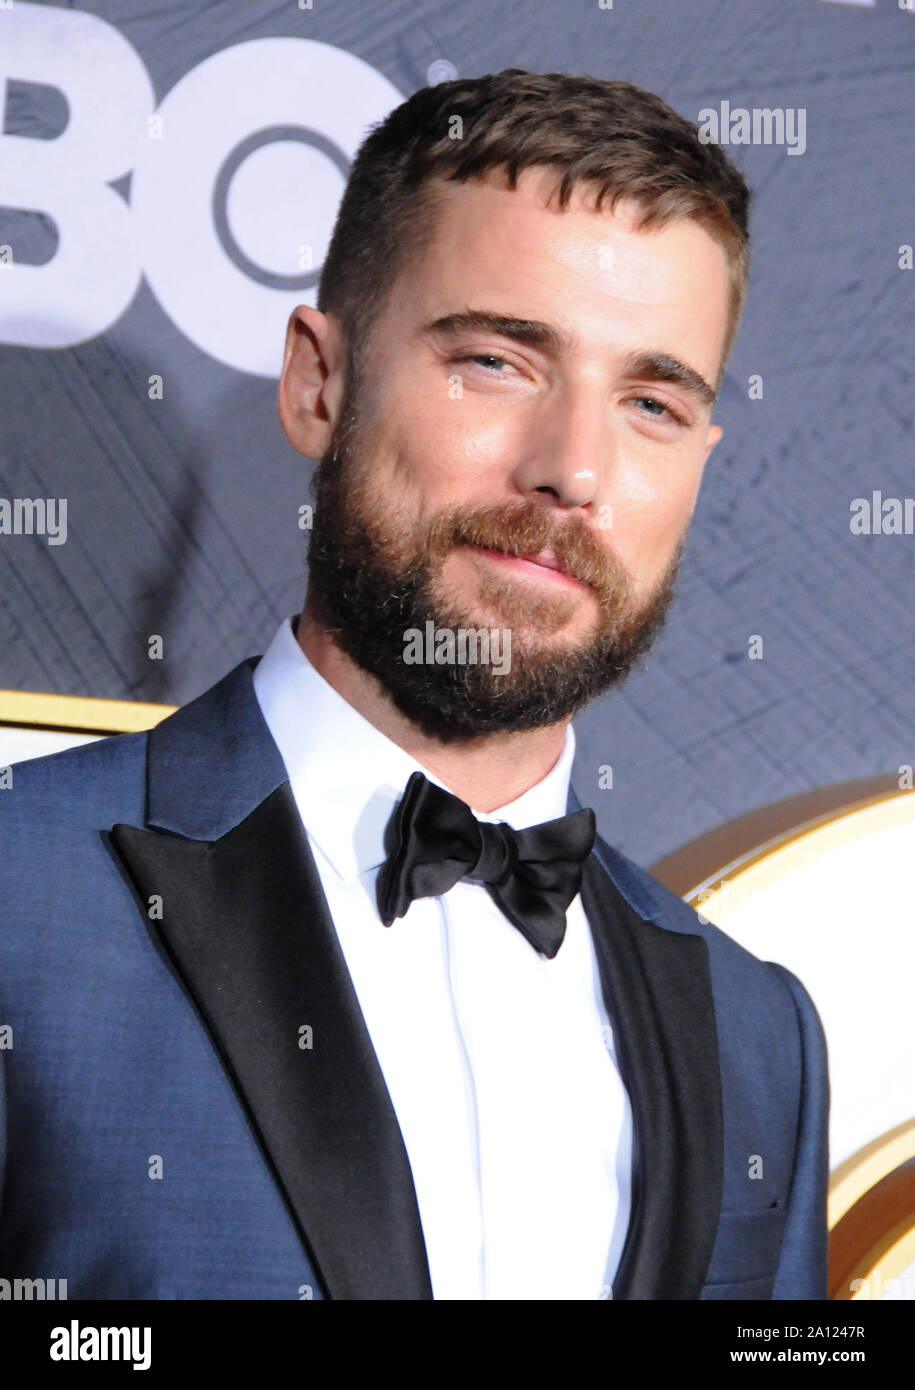 West Hollywood, California, USA 22nd September 2019 Actor Dustin Milligan attends HBO's Post Emmy Award Reception following 71st Primetime Emmy Awards on September 22, 2019 at The Plaza at the Pacific Design Center in West Hollywood, California, USA. Photo by Barry King/Alamy Live News Stock Photo